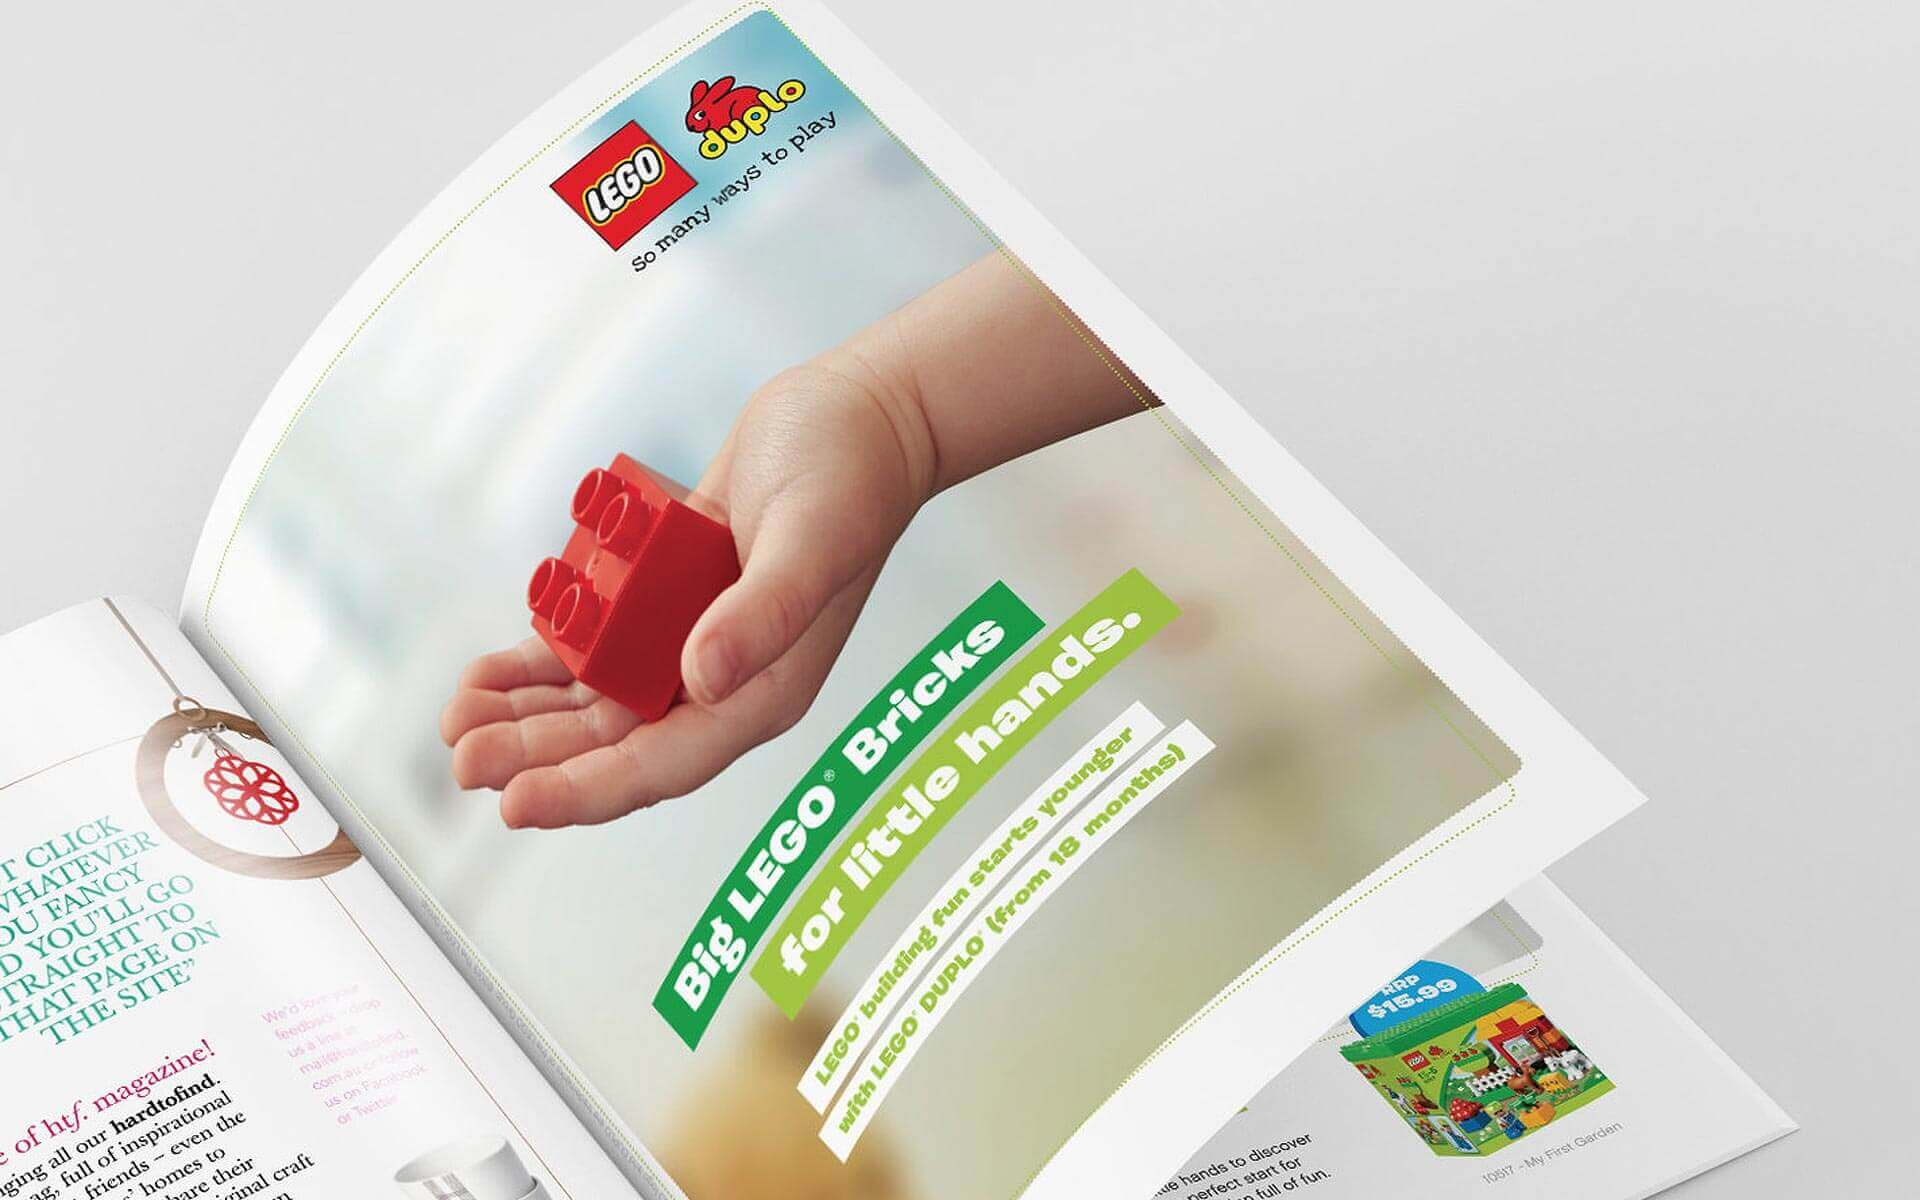 LEGO Duplo 'Big Bricks for Little Hands' magazine ad.